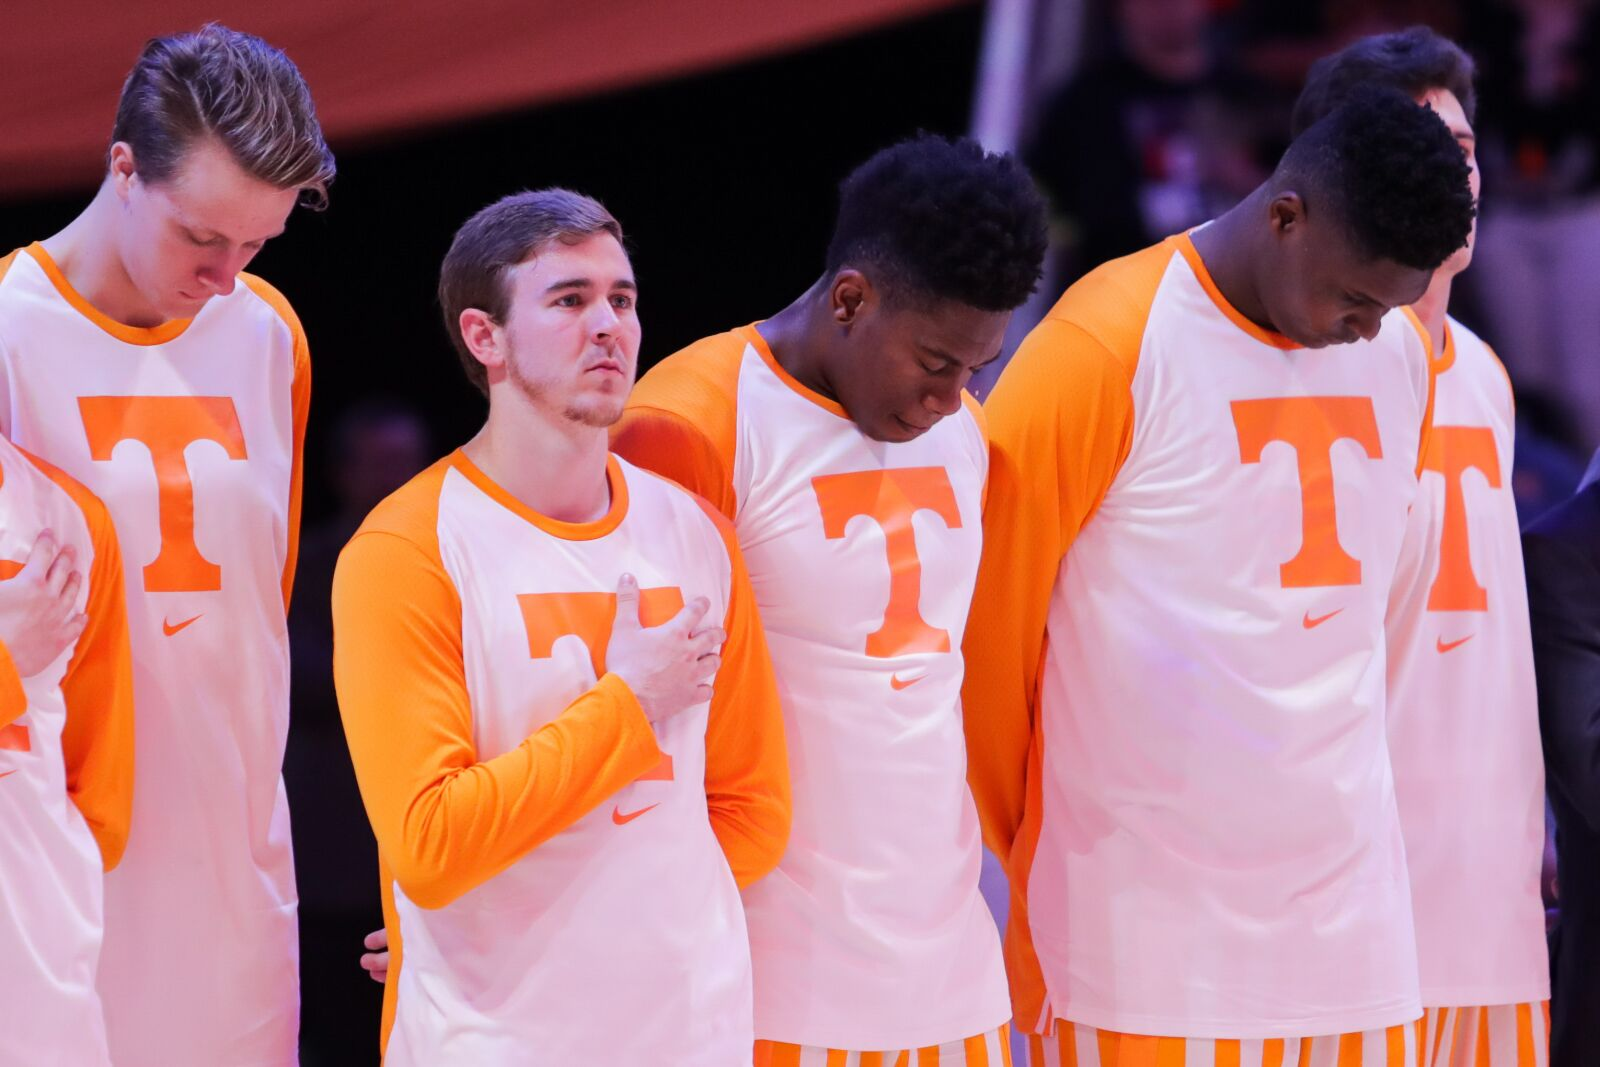 Tennessee Basketball: What's next for the Vols after DJ Burns transfer